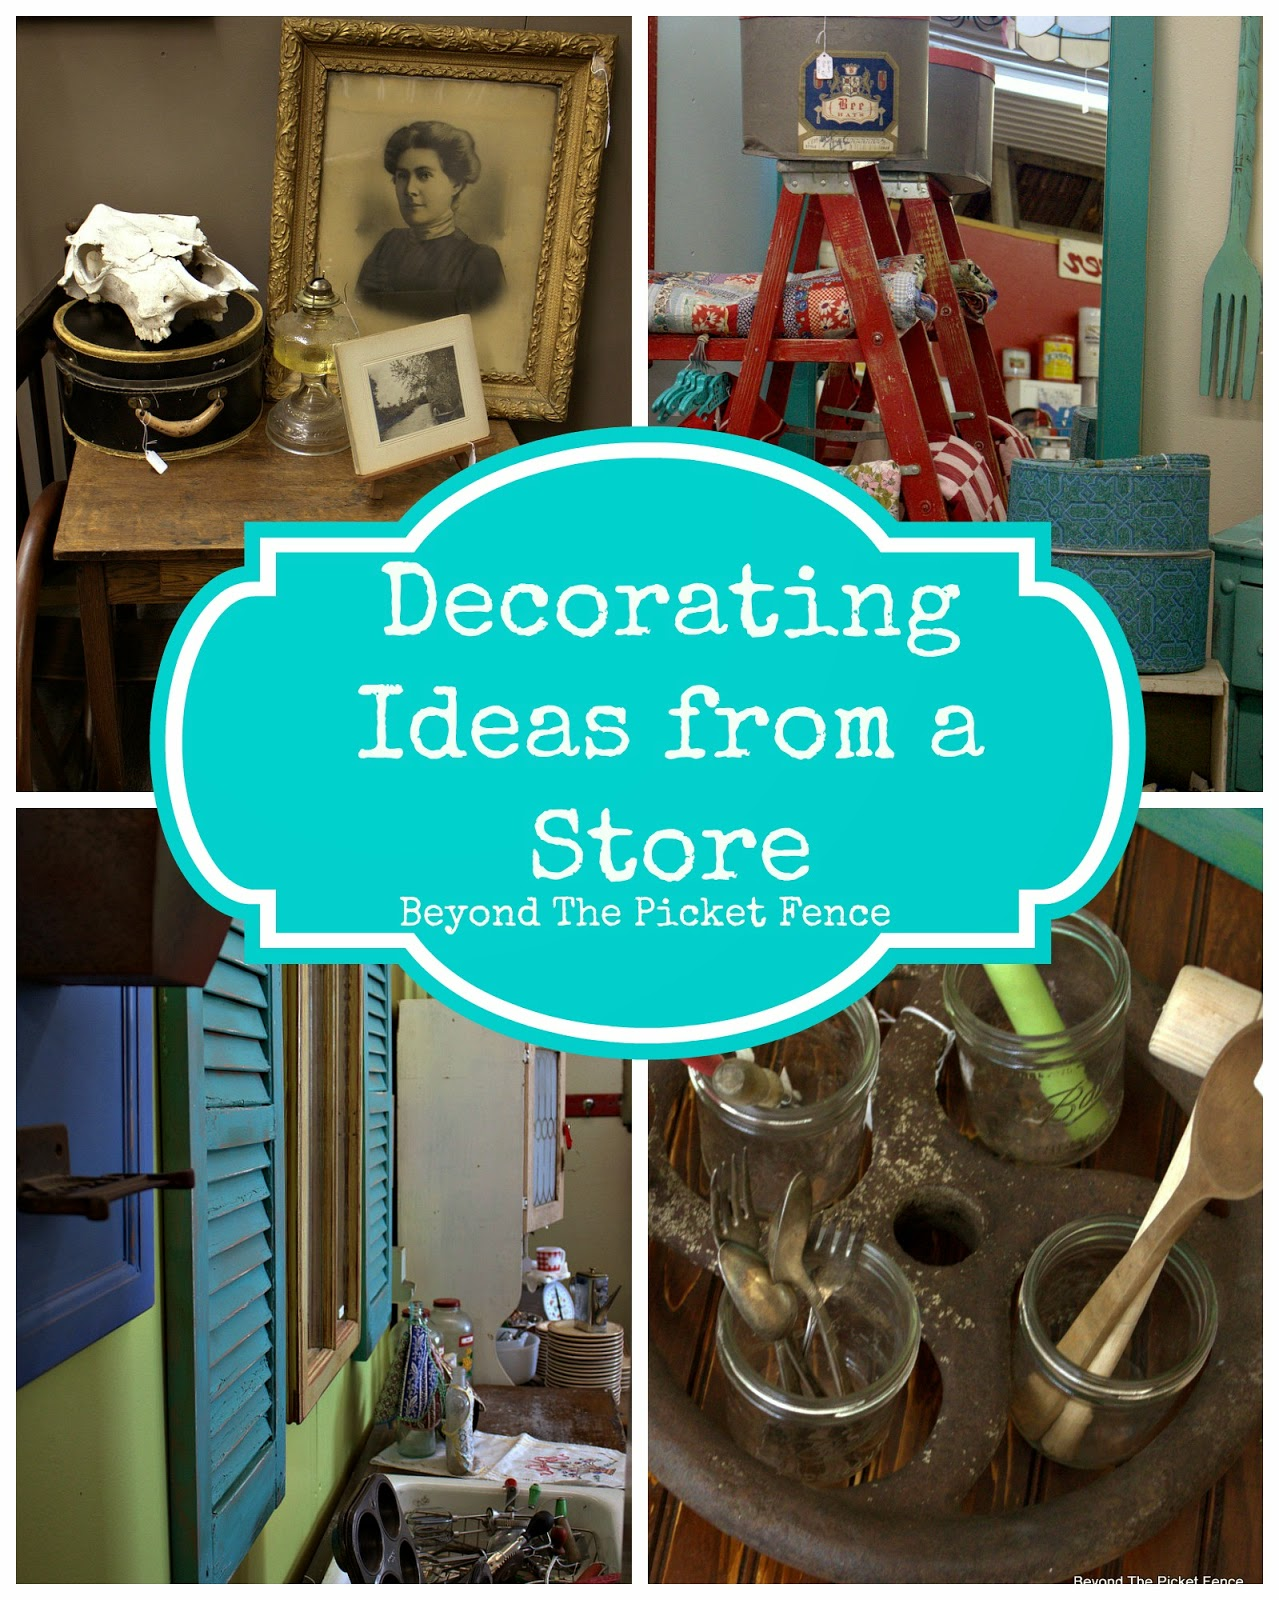 antiques, decor, store, http://bec4-beyondthepicketfence.blogspot.com/2015/02/5-decorating-lessons-from-store.html